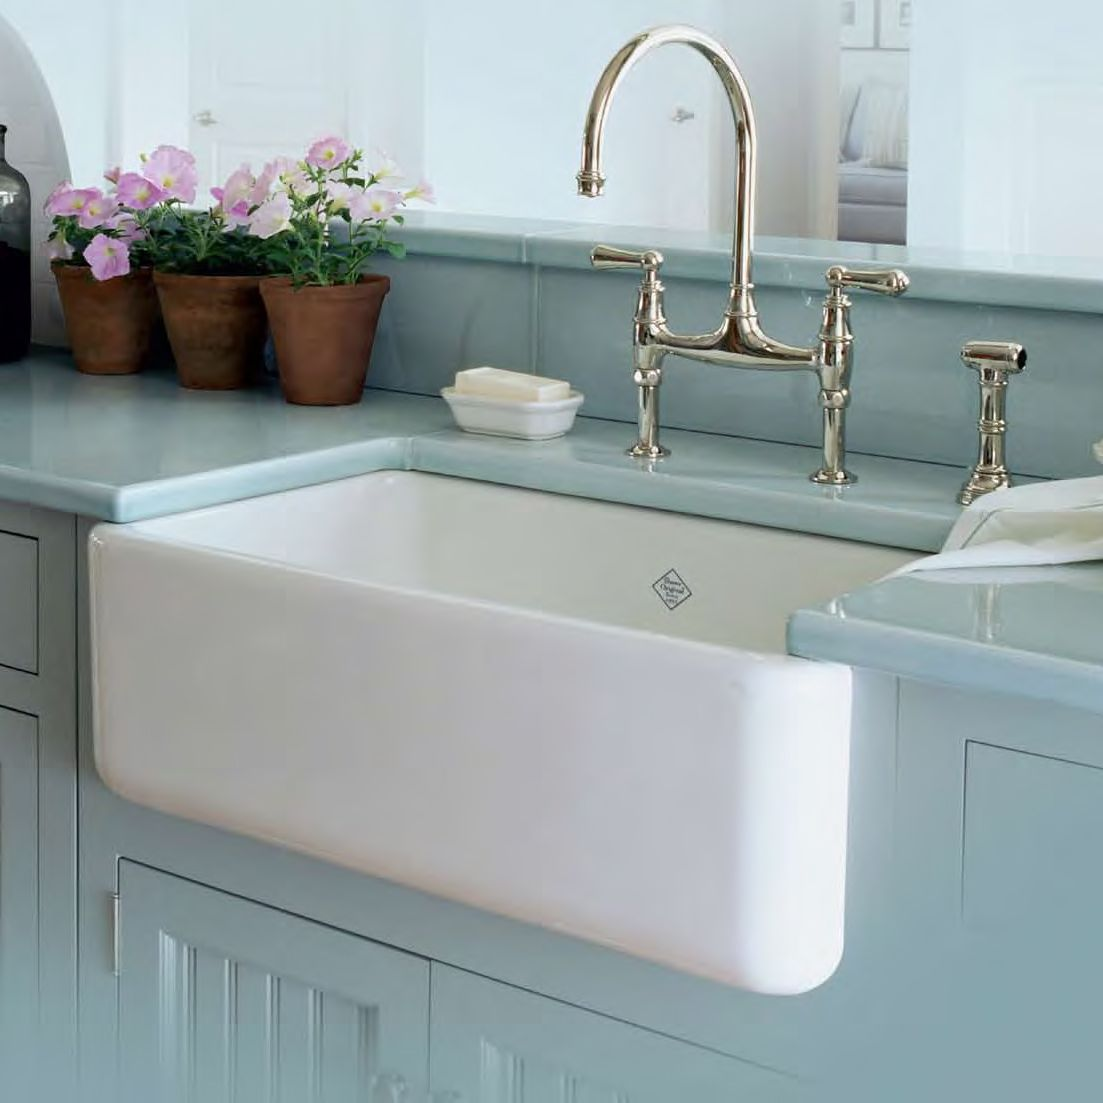 Picture of: Rohl Shaws 33 Fireclay Farmhouse Apron Sink White Rc3318wh The Sink Boutique